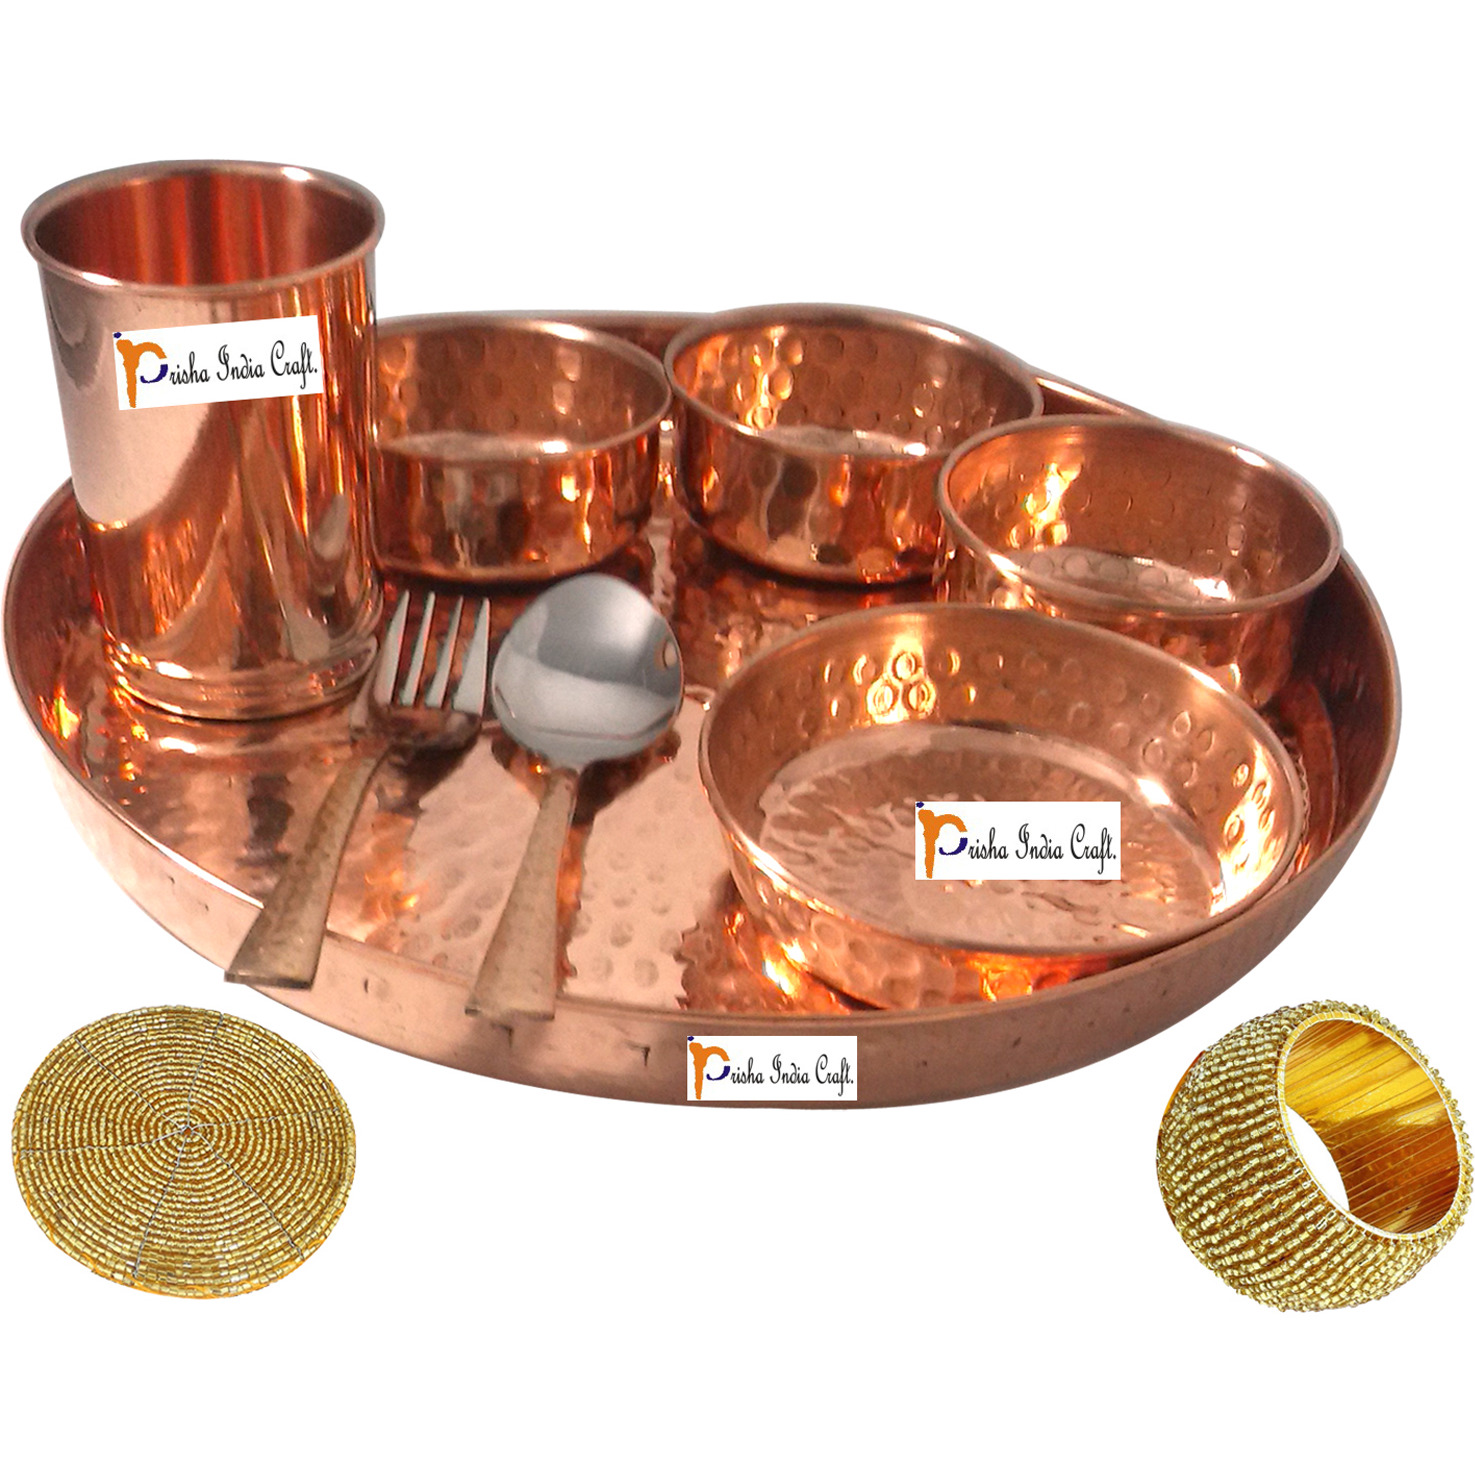 Set of 3 Prisha India Craft B. Handmade Indian Dinnerware Pure Copper Thali Set Dia 12  Traditional Dinner Set of Plate, Bowl, Spoons, Glass with Napkin ring and Coaster - Christmas Gift